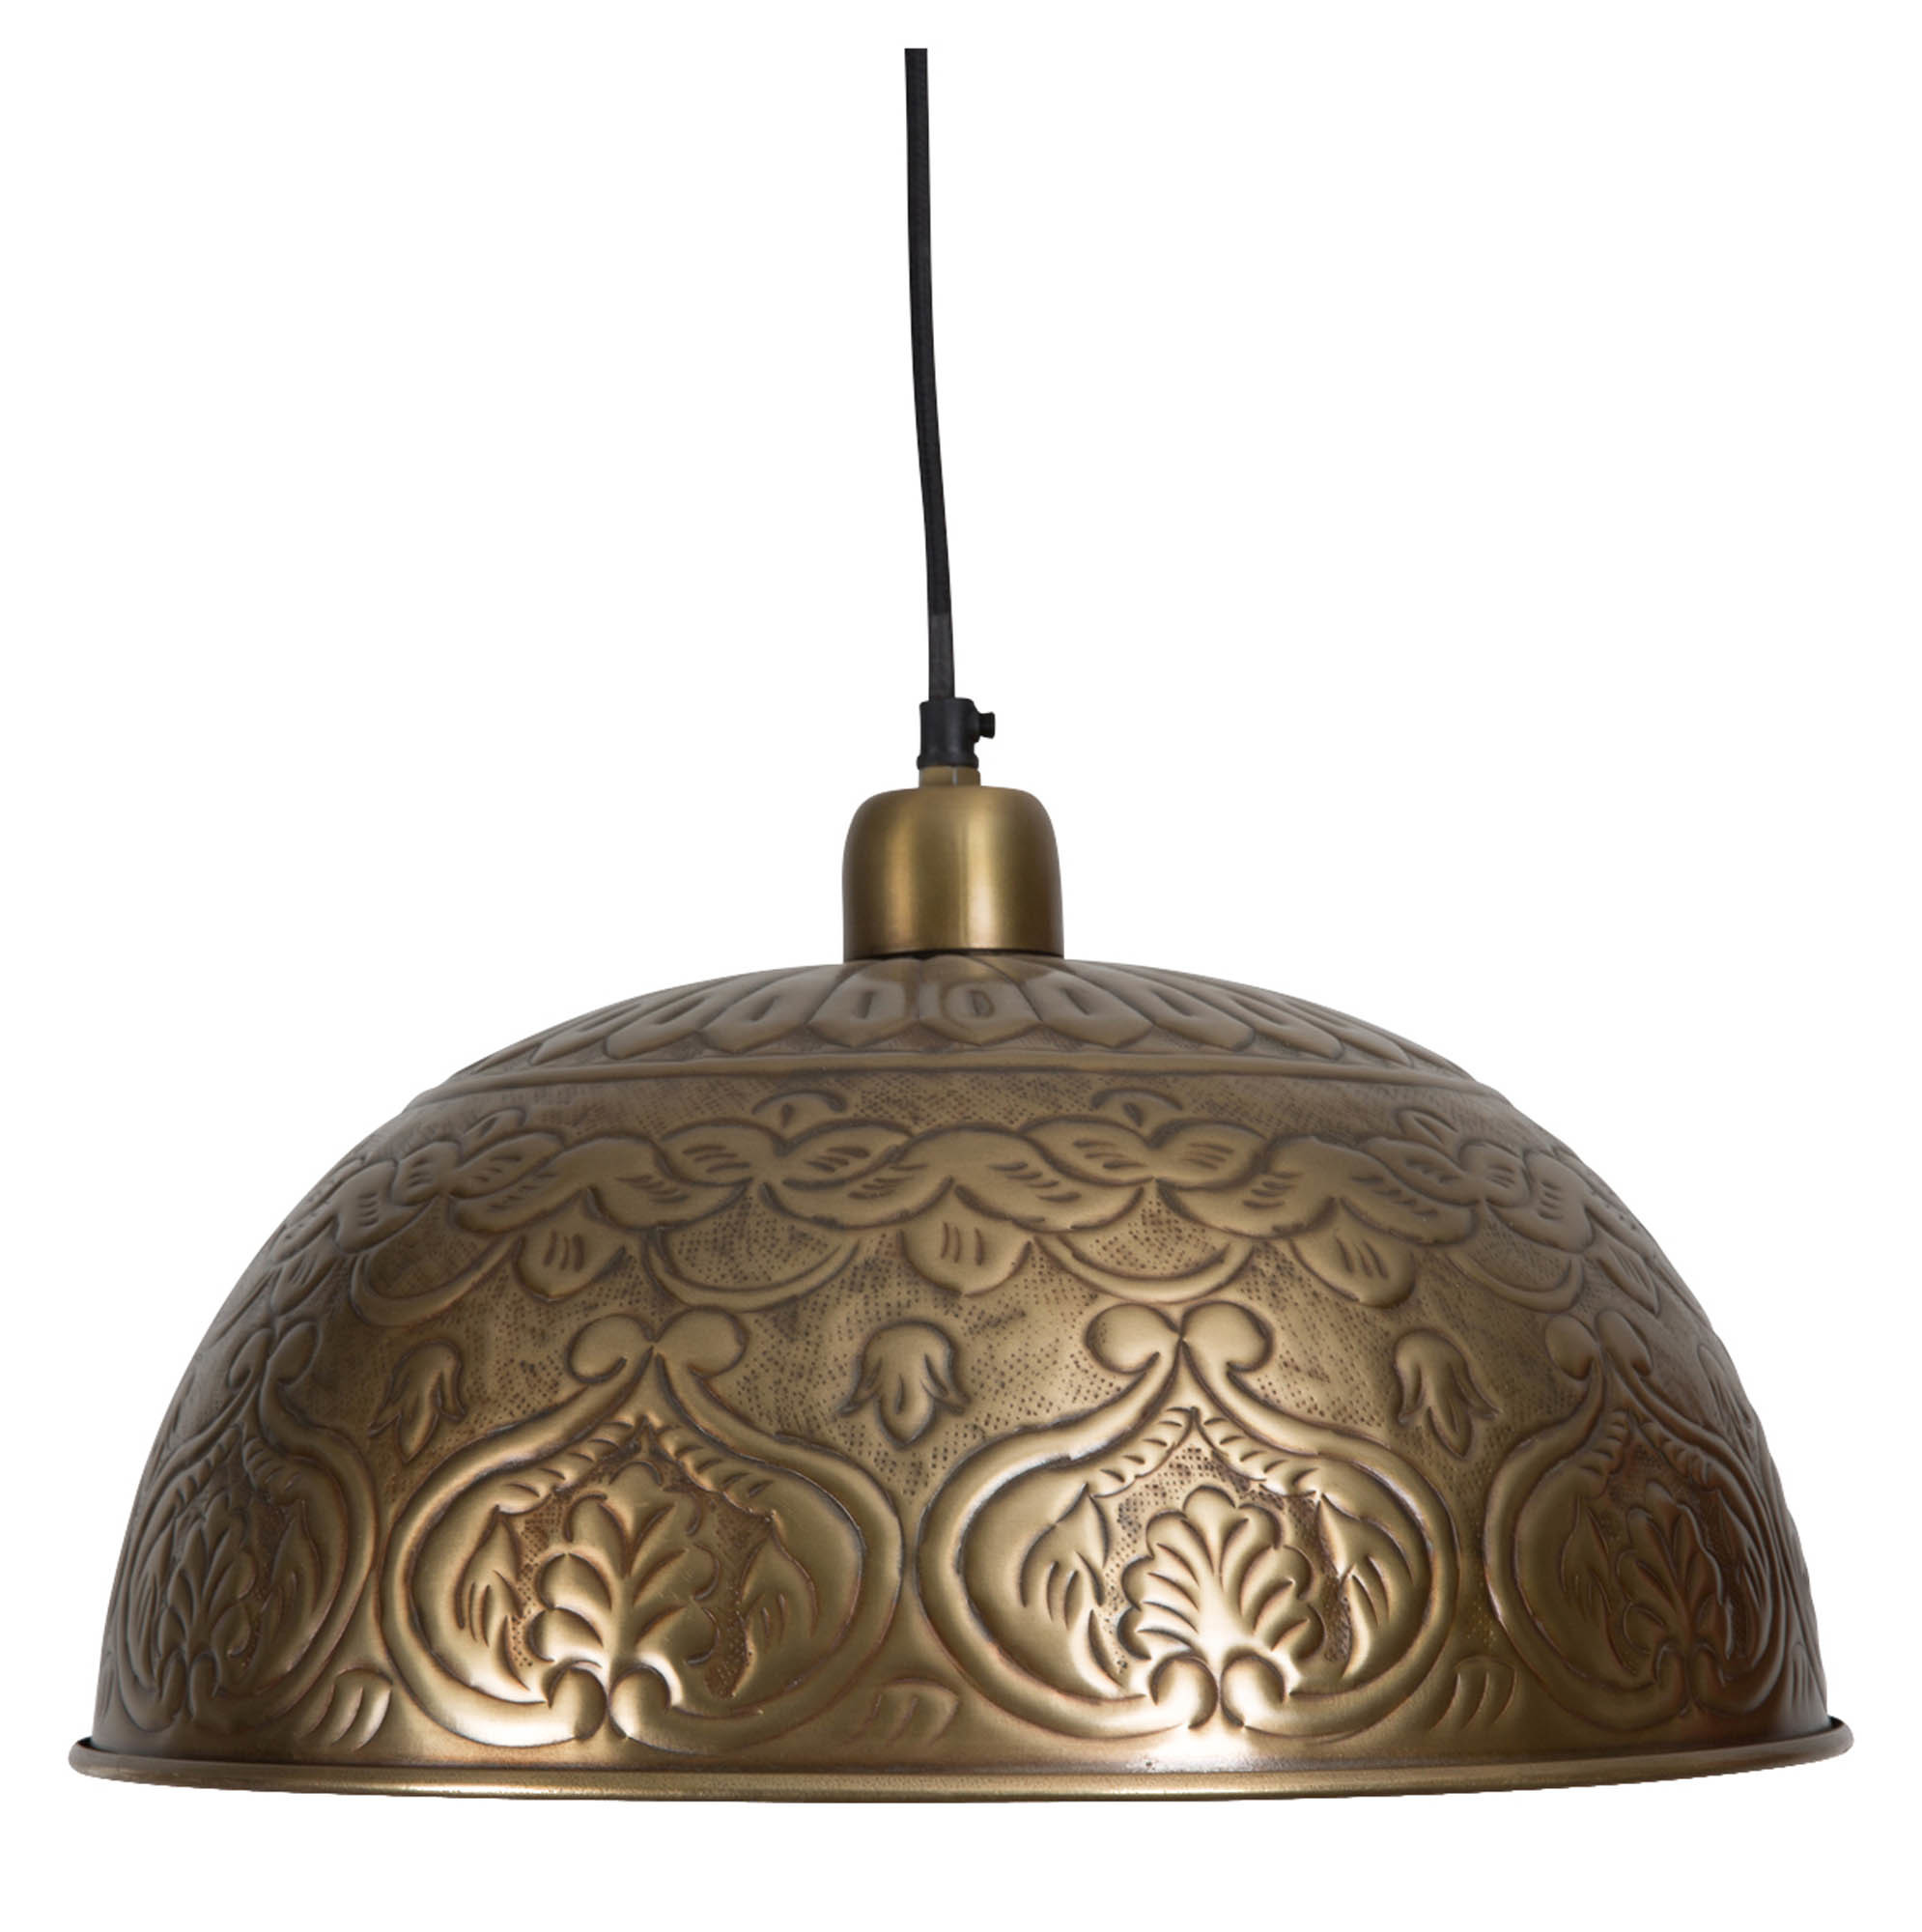 Marrakesh embossed bowl pendant light temple webster sku cas1339 marrakesh embossed bowl pendant light is also sometimes listed under the following manufacturer numbers os03 os04 aloadofball Image collections